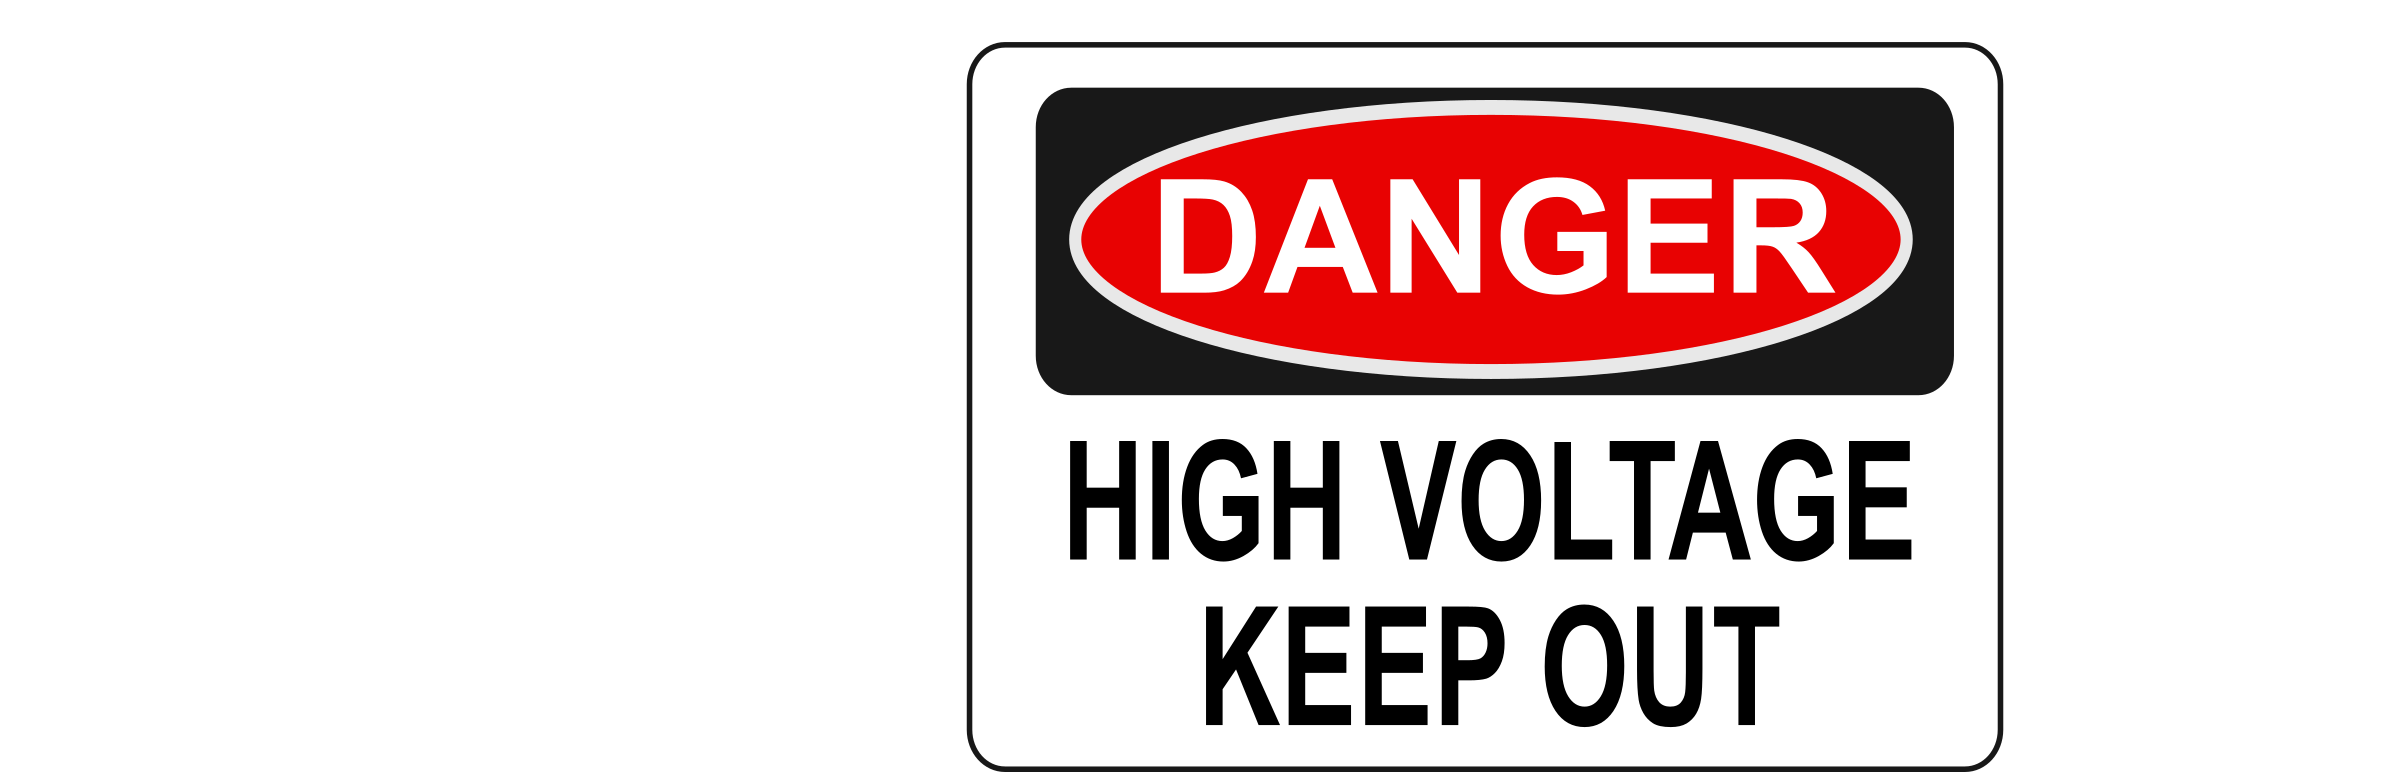 Danger - High Voltage Keep Out by Rfc1394